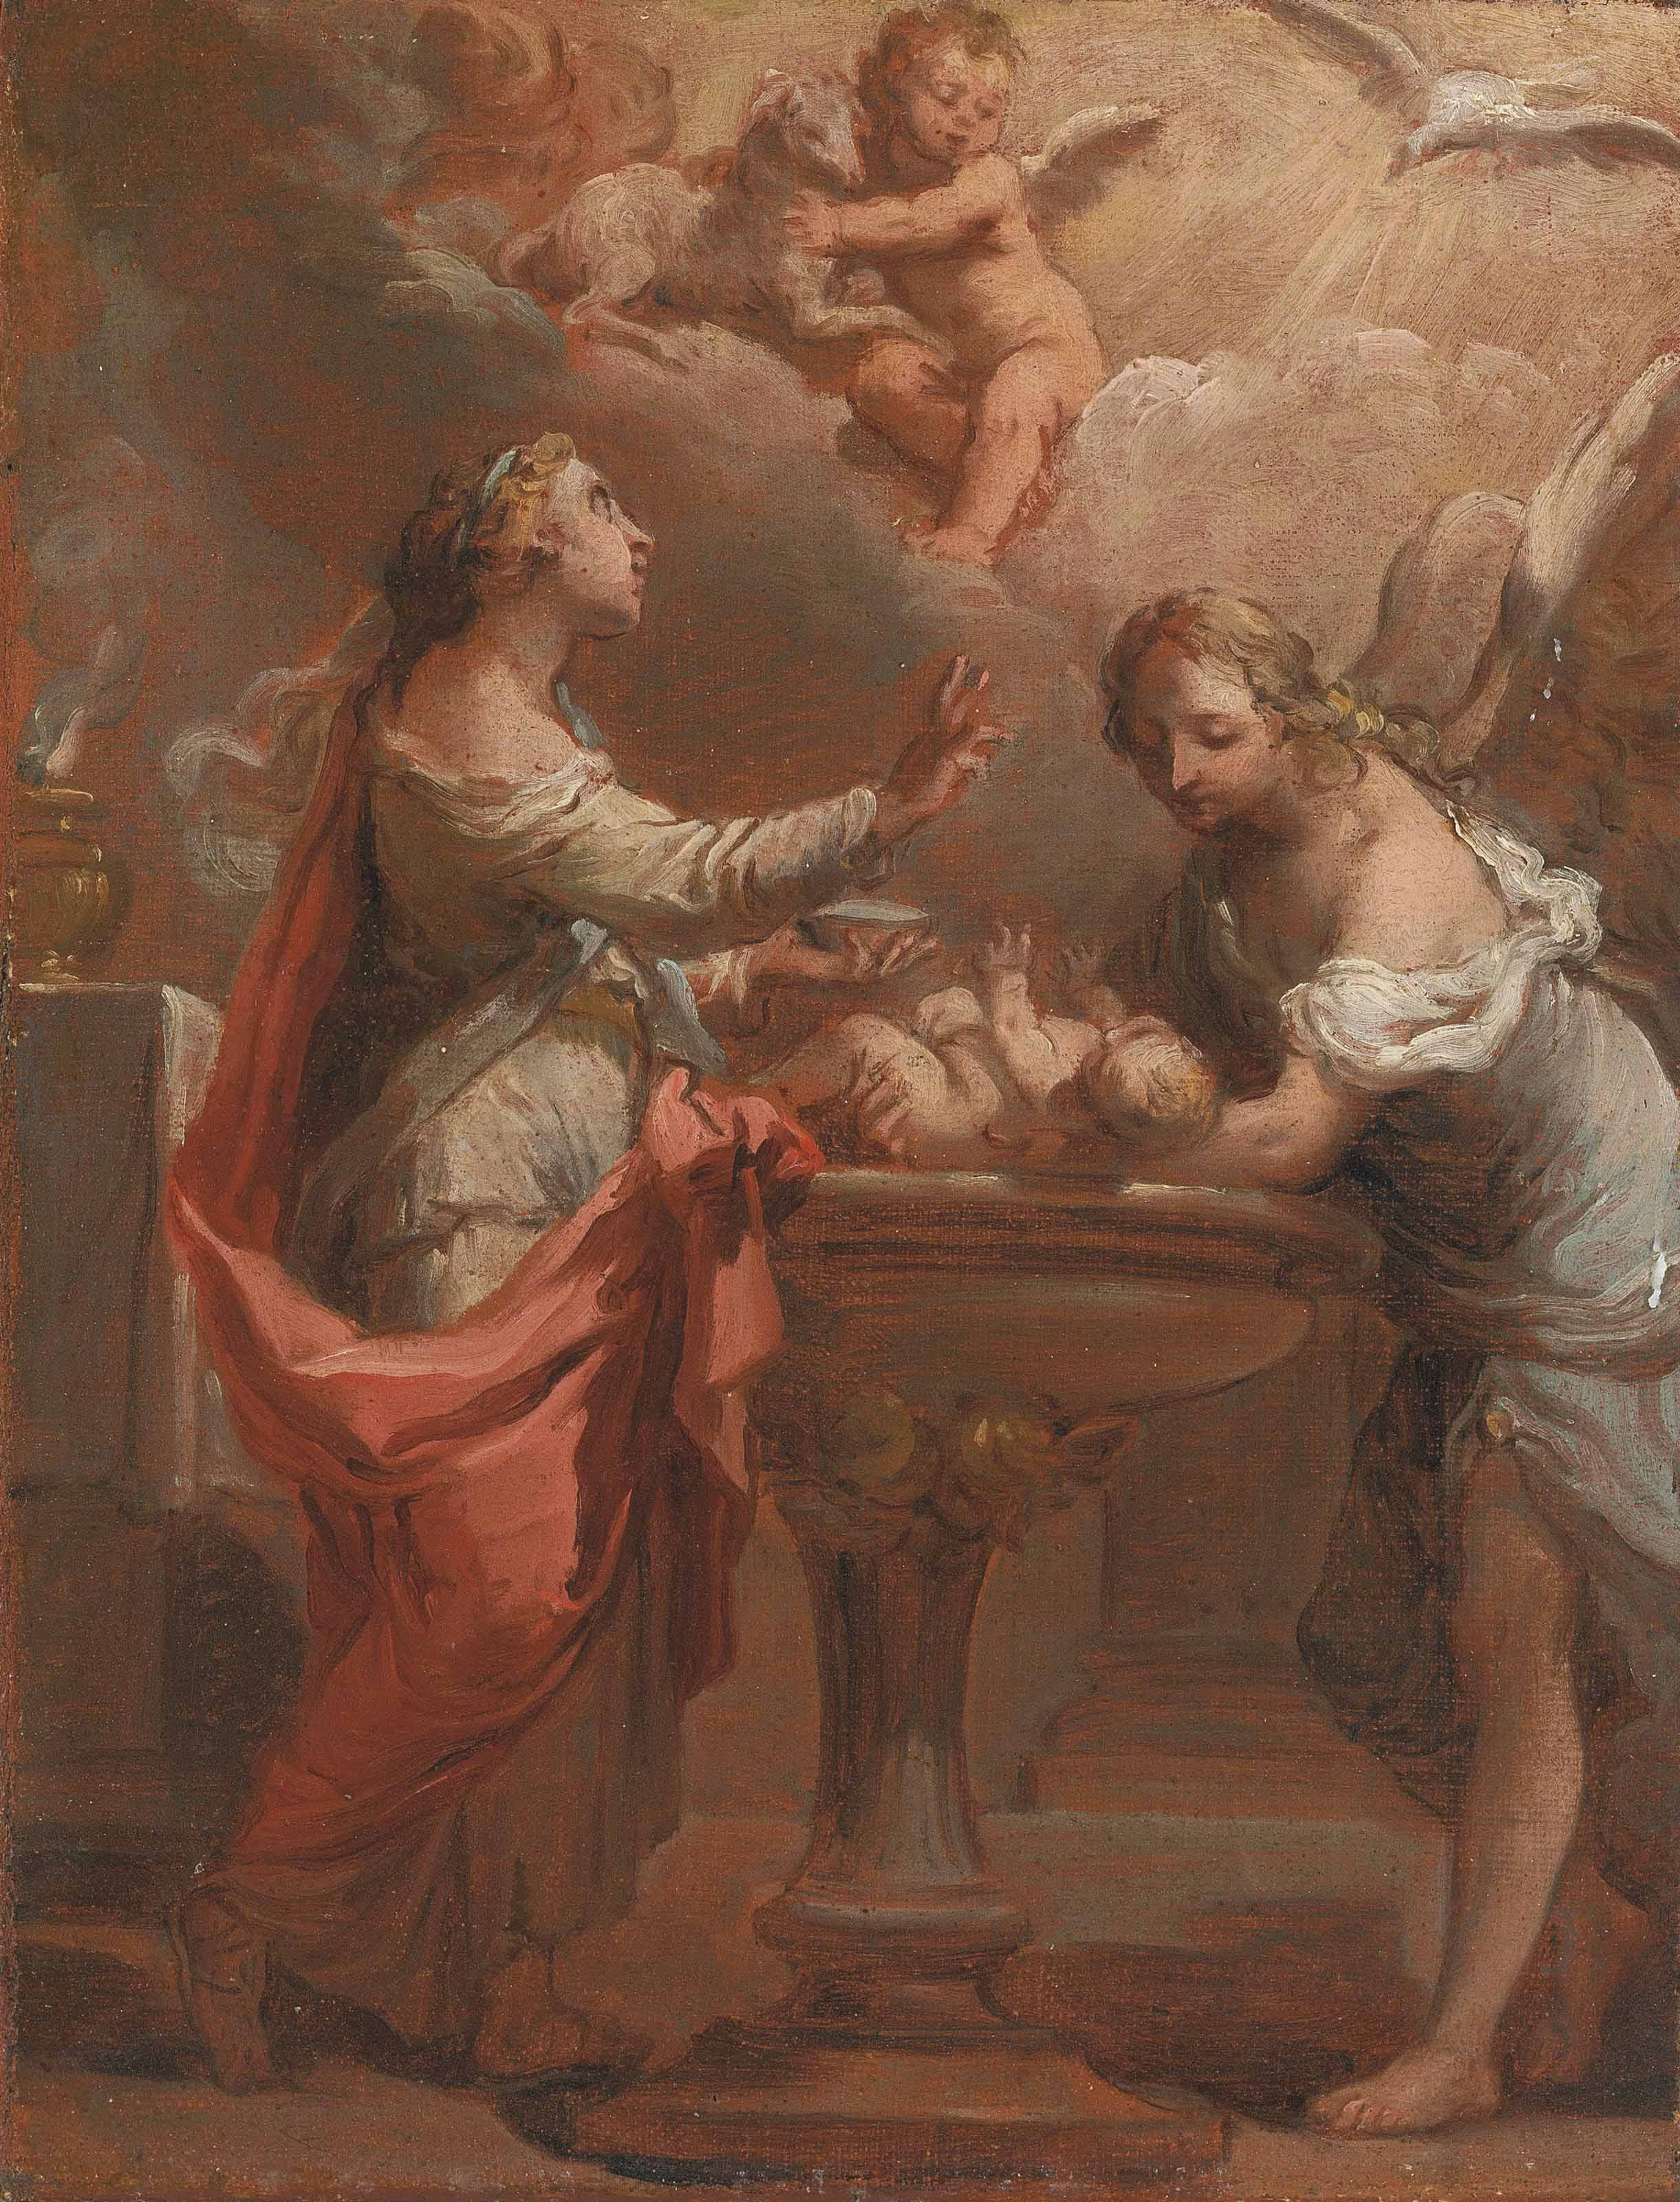 An Allegory of the Sacrament of Baptism - a bozzetto